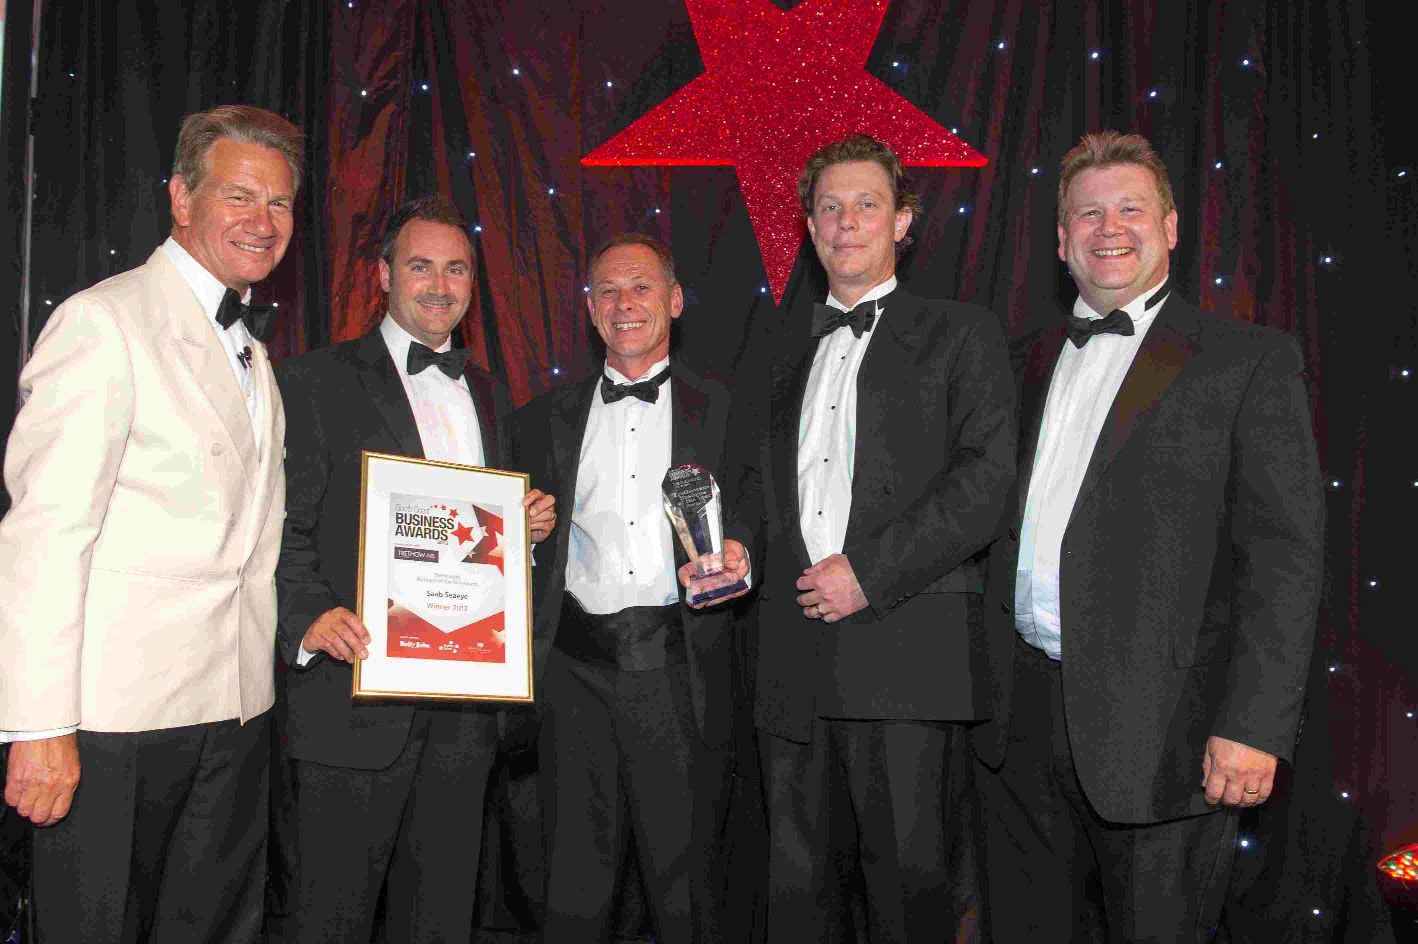 Trethowan's Overall Winner's Award celebrates business success